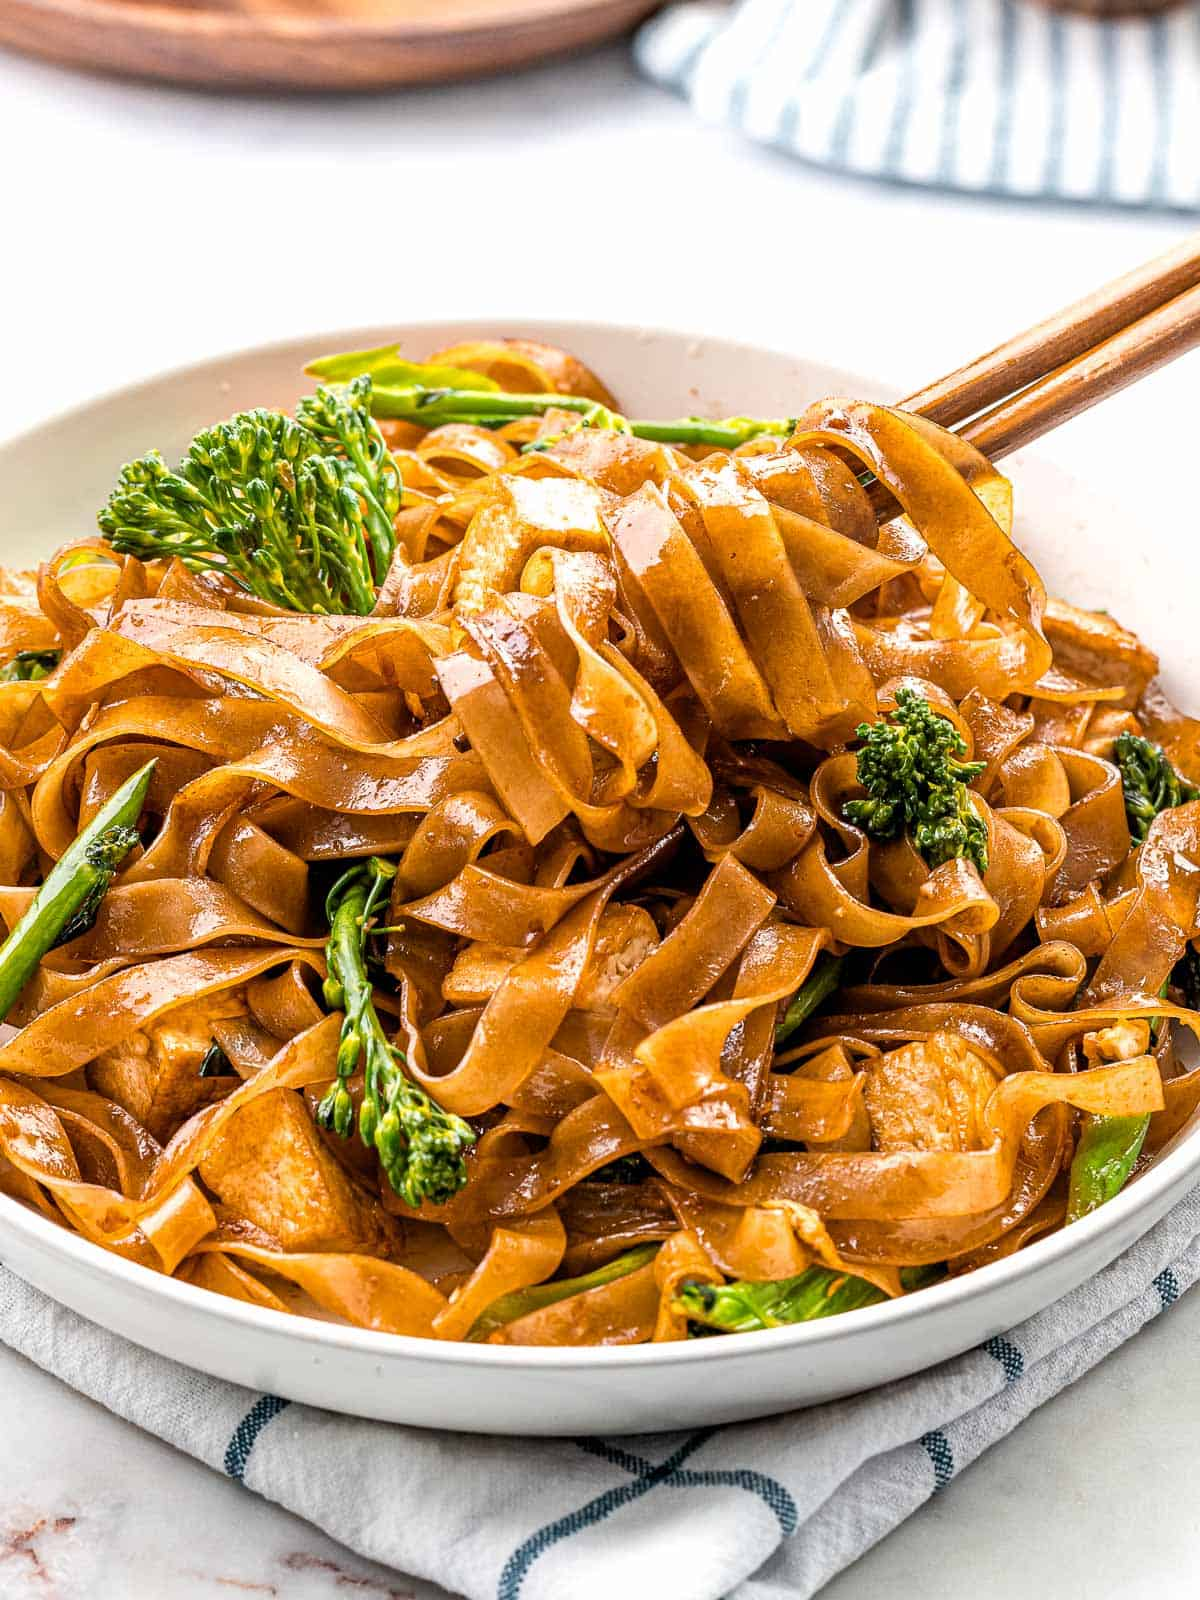 Pad see ew noodles stir fried with Chinese broccoli and chicken wrapped around chopsticks.